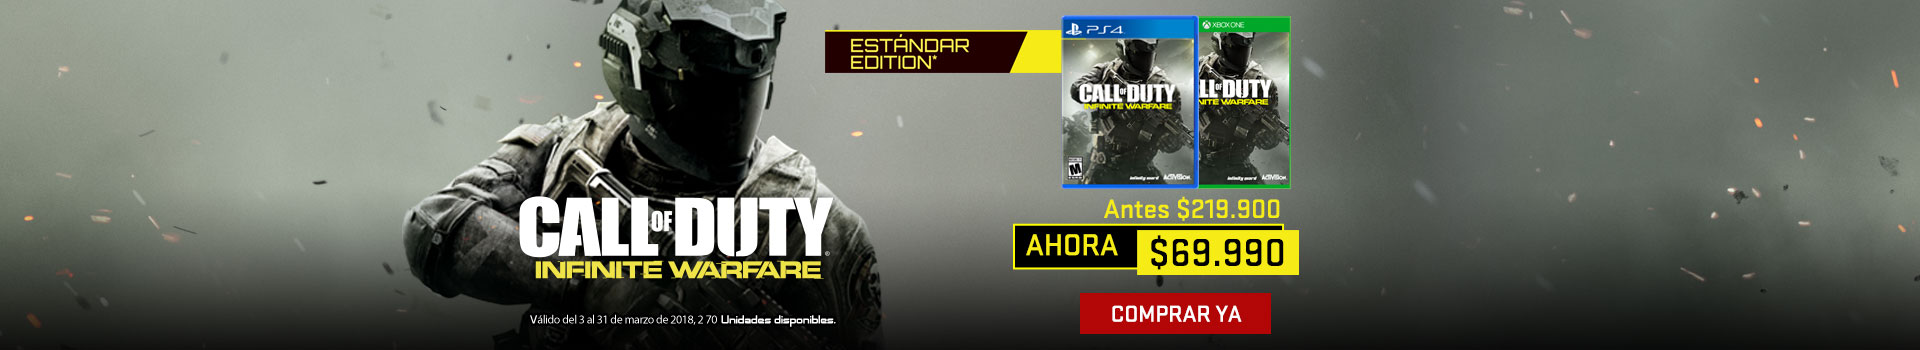 CAT-AK-KT-19-videojuegos-dctos-infinite-warfare-cat-marzo8/31